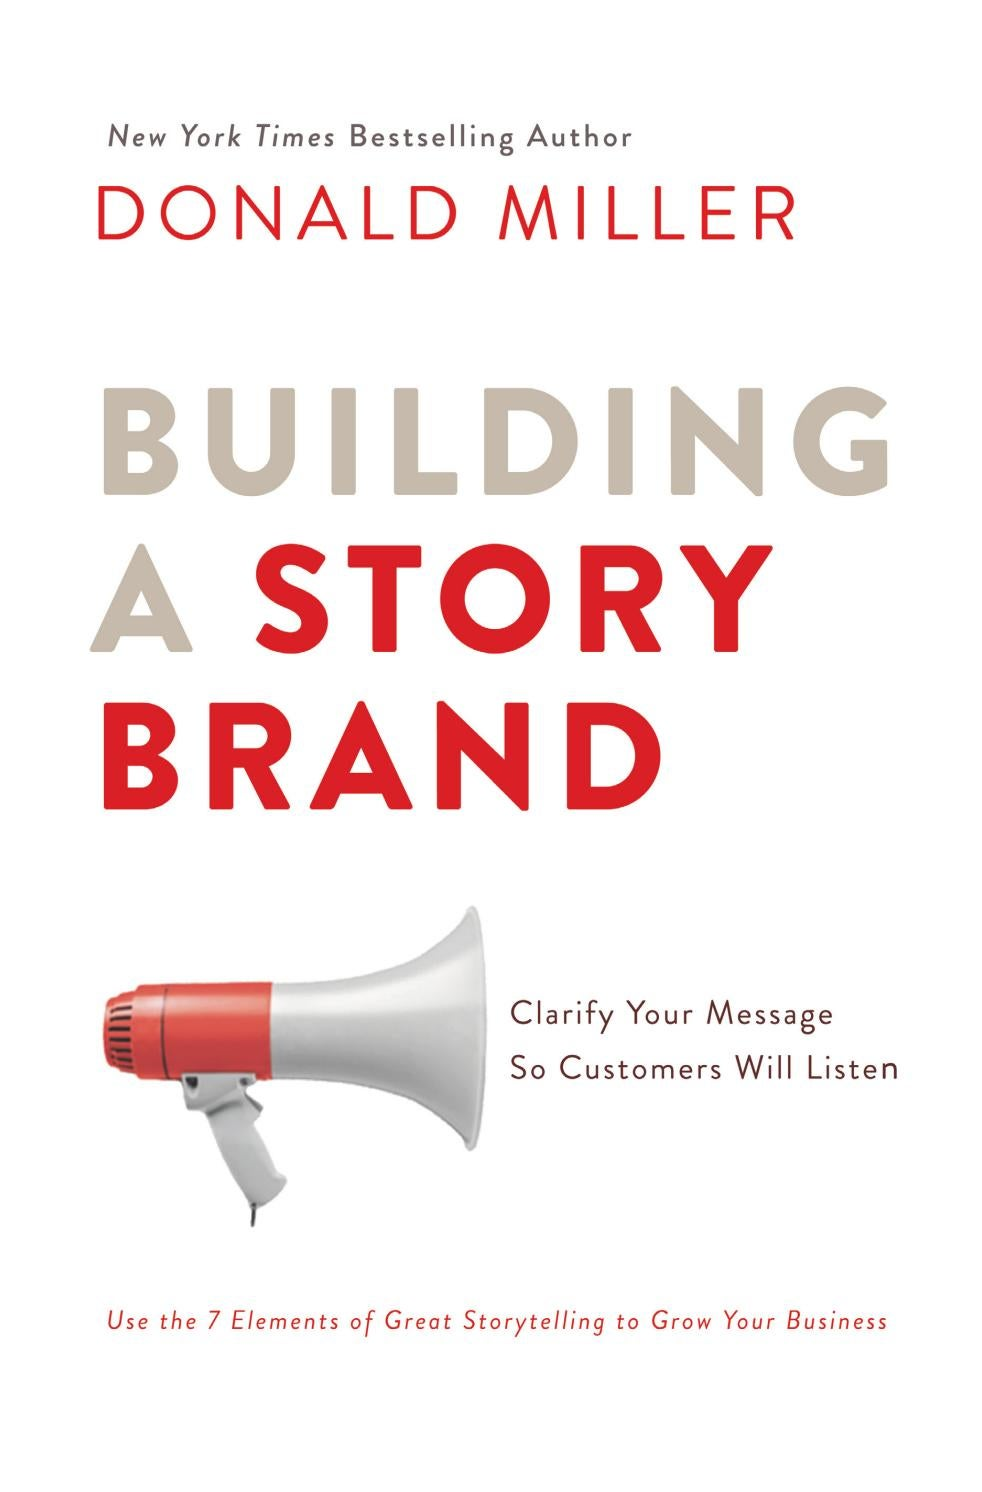 Storybrand guide directory